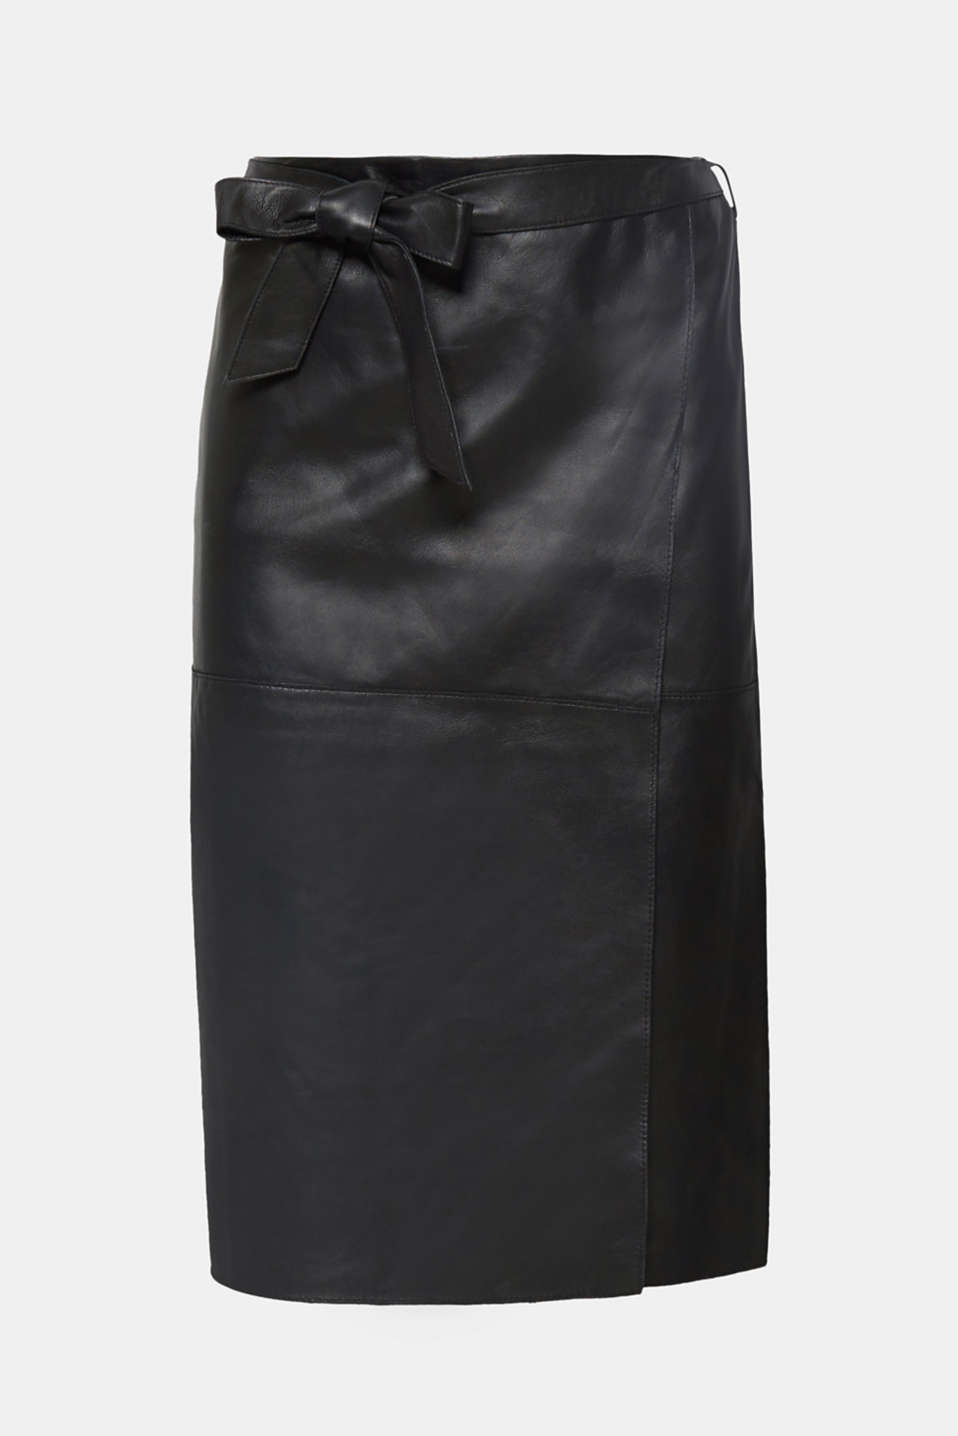 This narrow skirt made of premium smooth leather featuring a fixed, wrap-over effect and tie-around belt looks elegant and stylish!